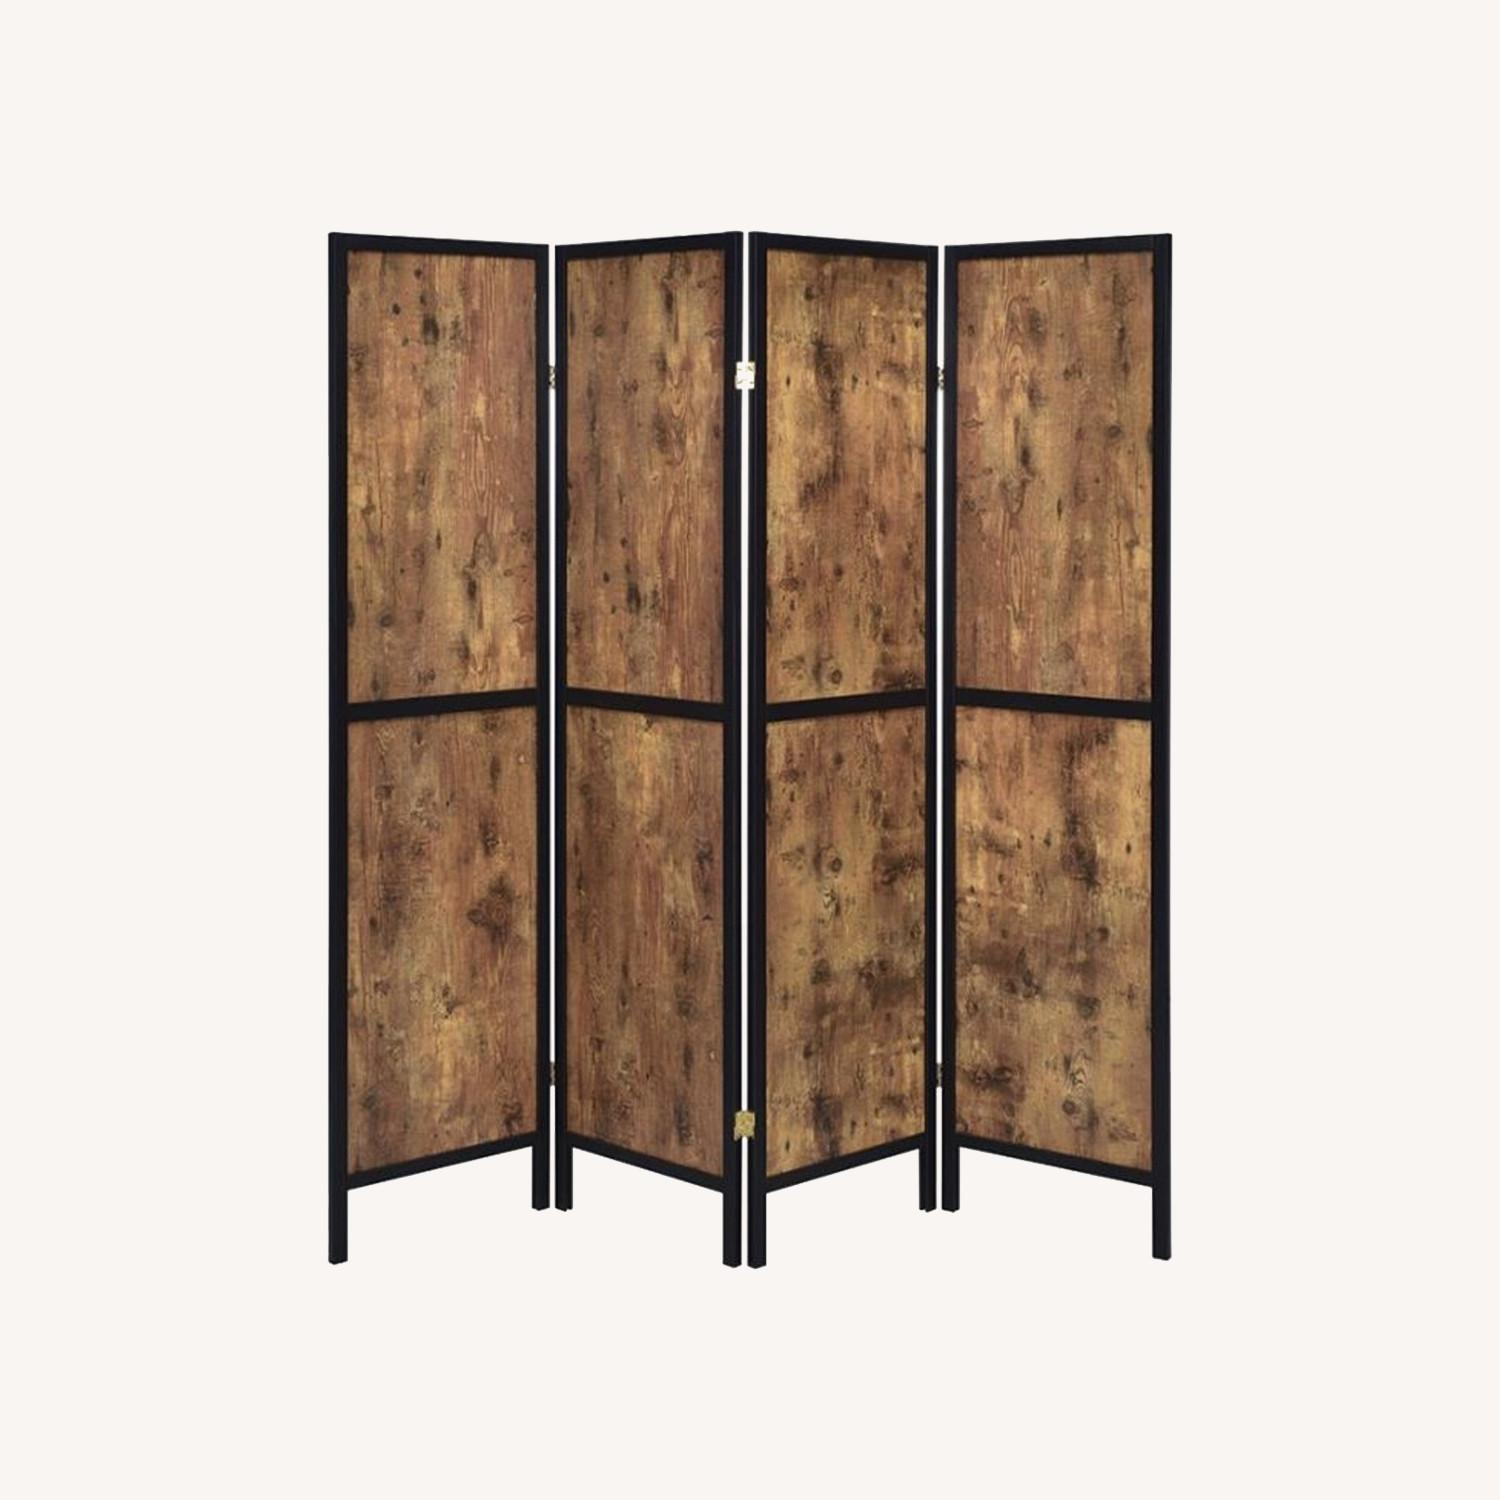 Four-Panel Folding Screen In Antique Nutmeg - image-4